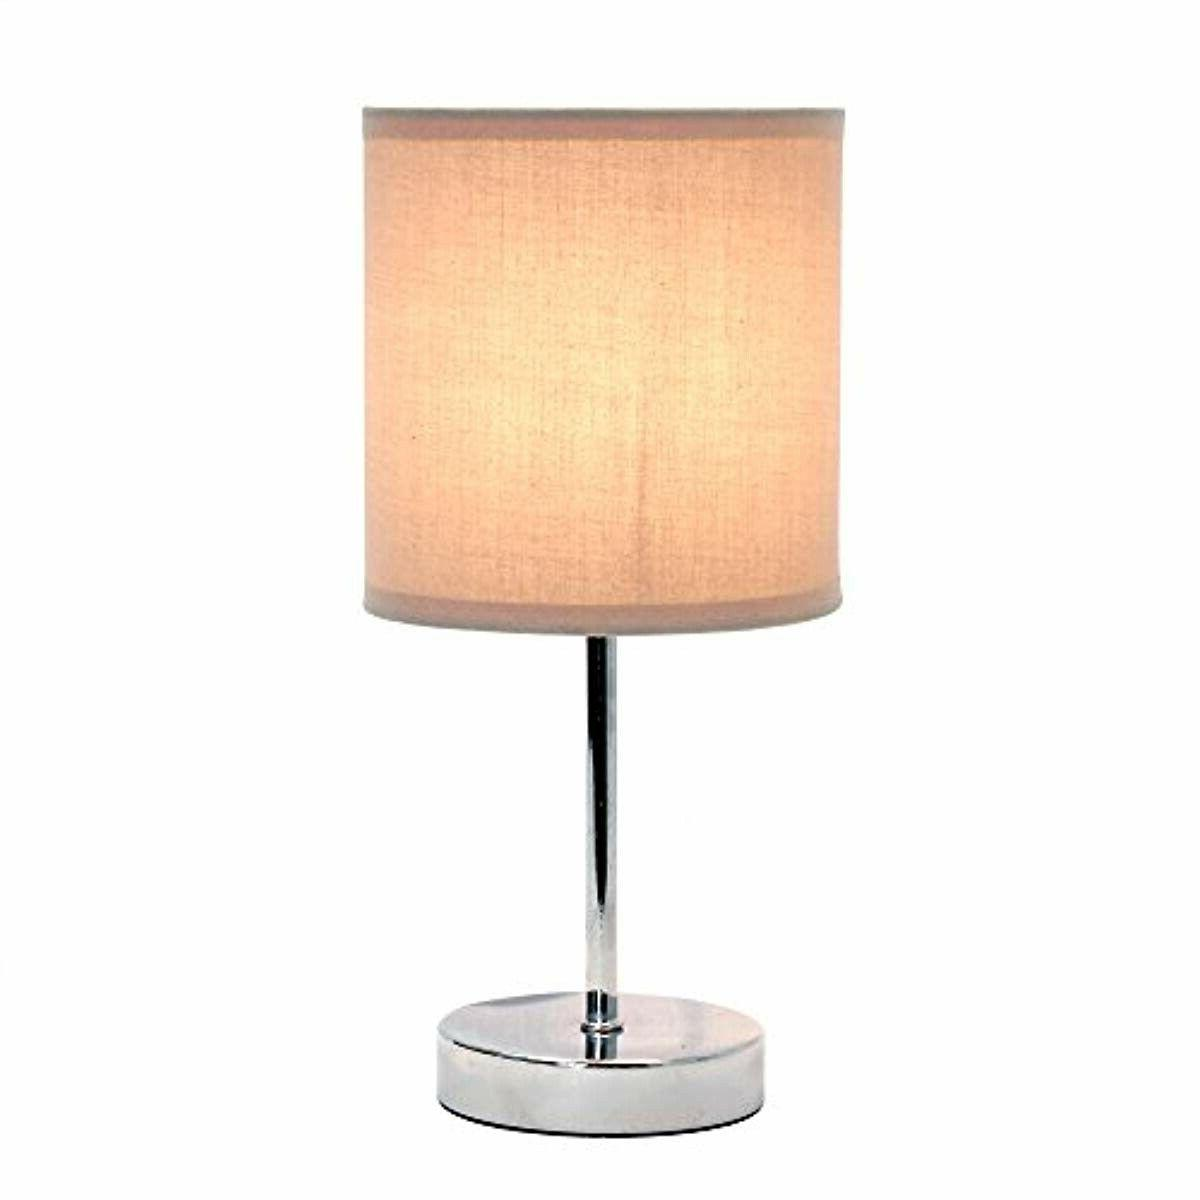 Simple Home LT2007-GRY Simple Basic Lamp with